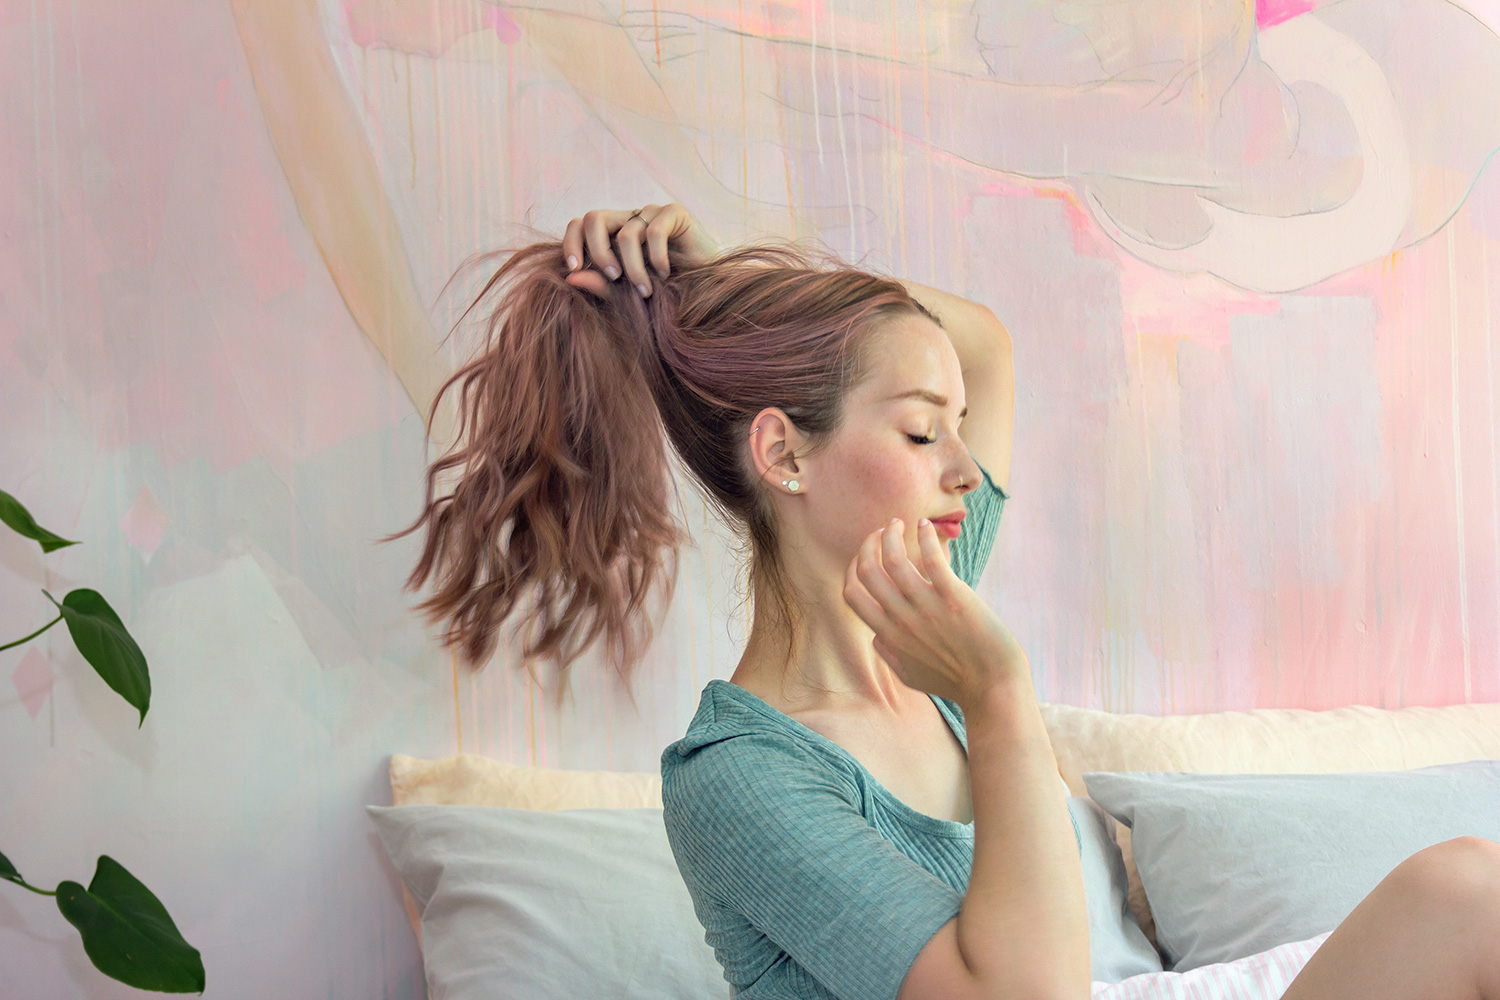 Model plays with her pastel purple hair in front of an abstract mural.